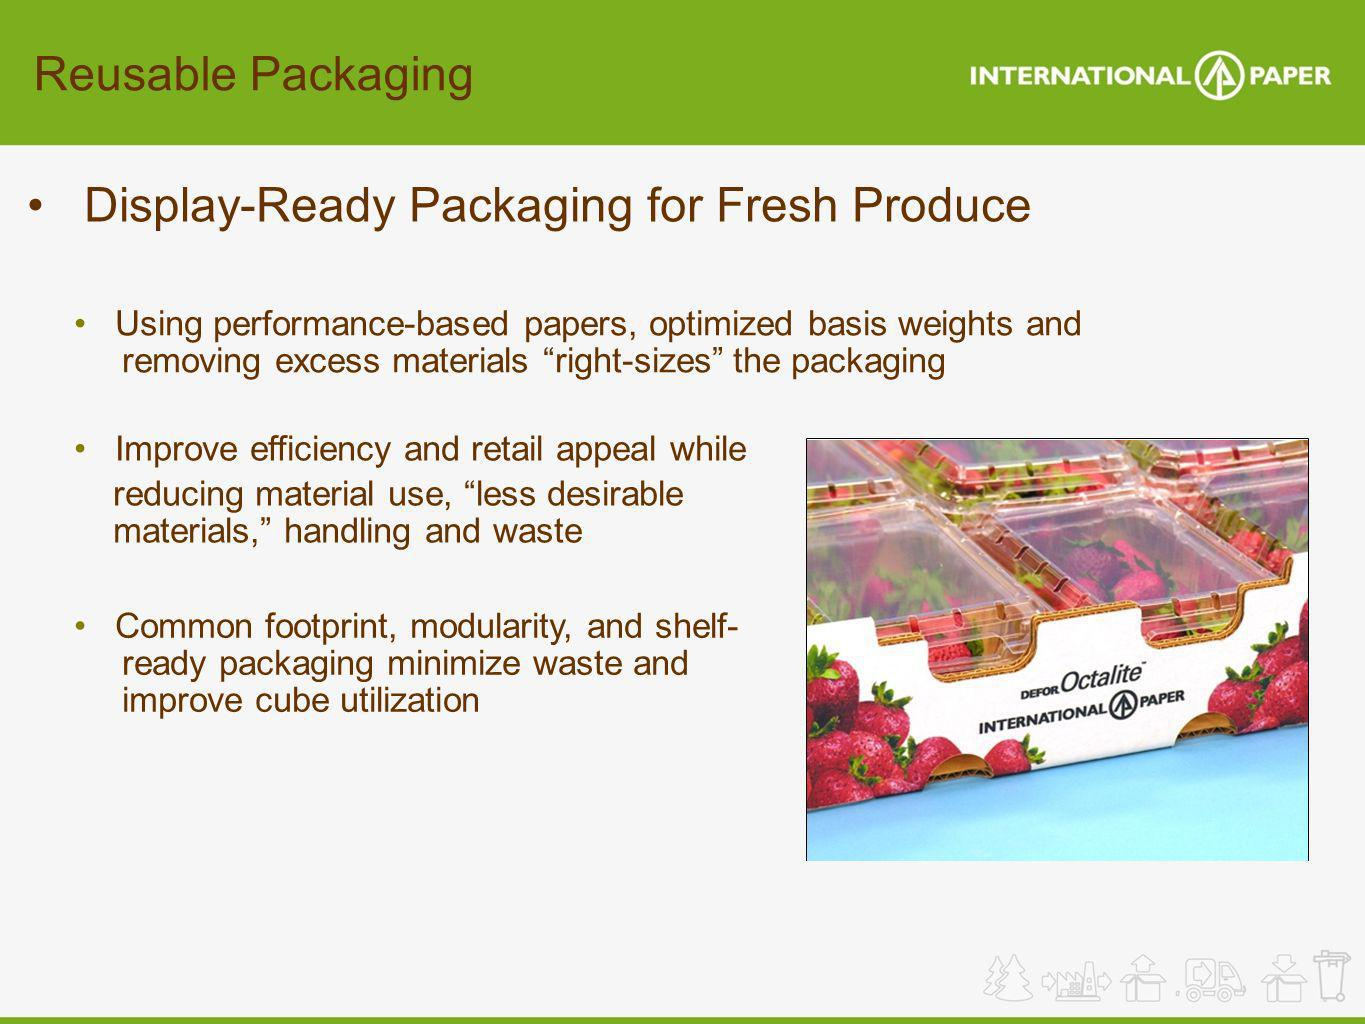 Display-Ready Packaging for Fresh Produce